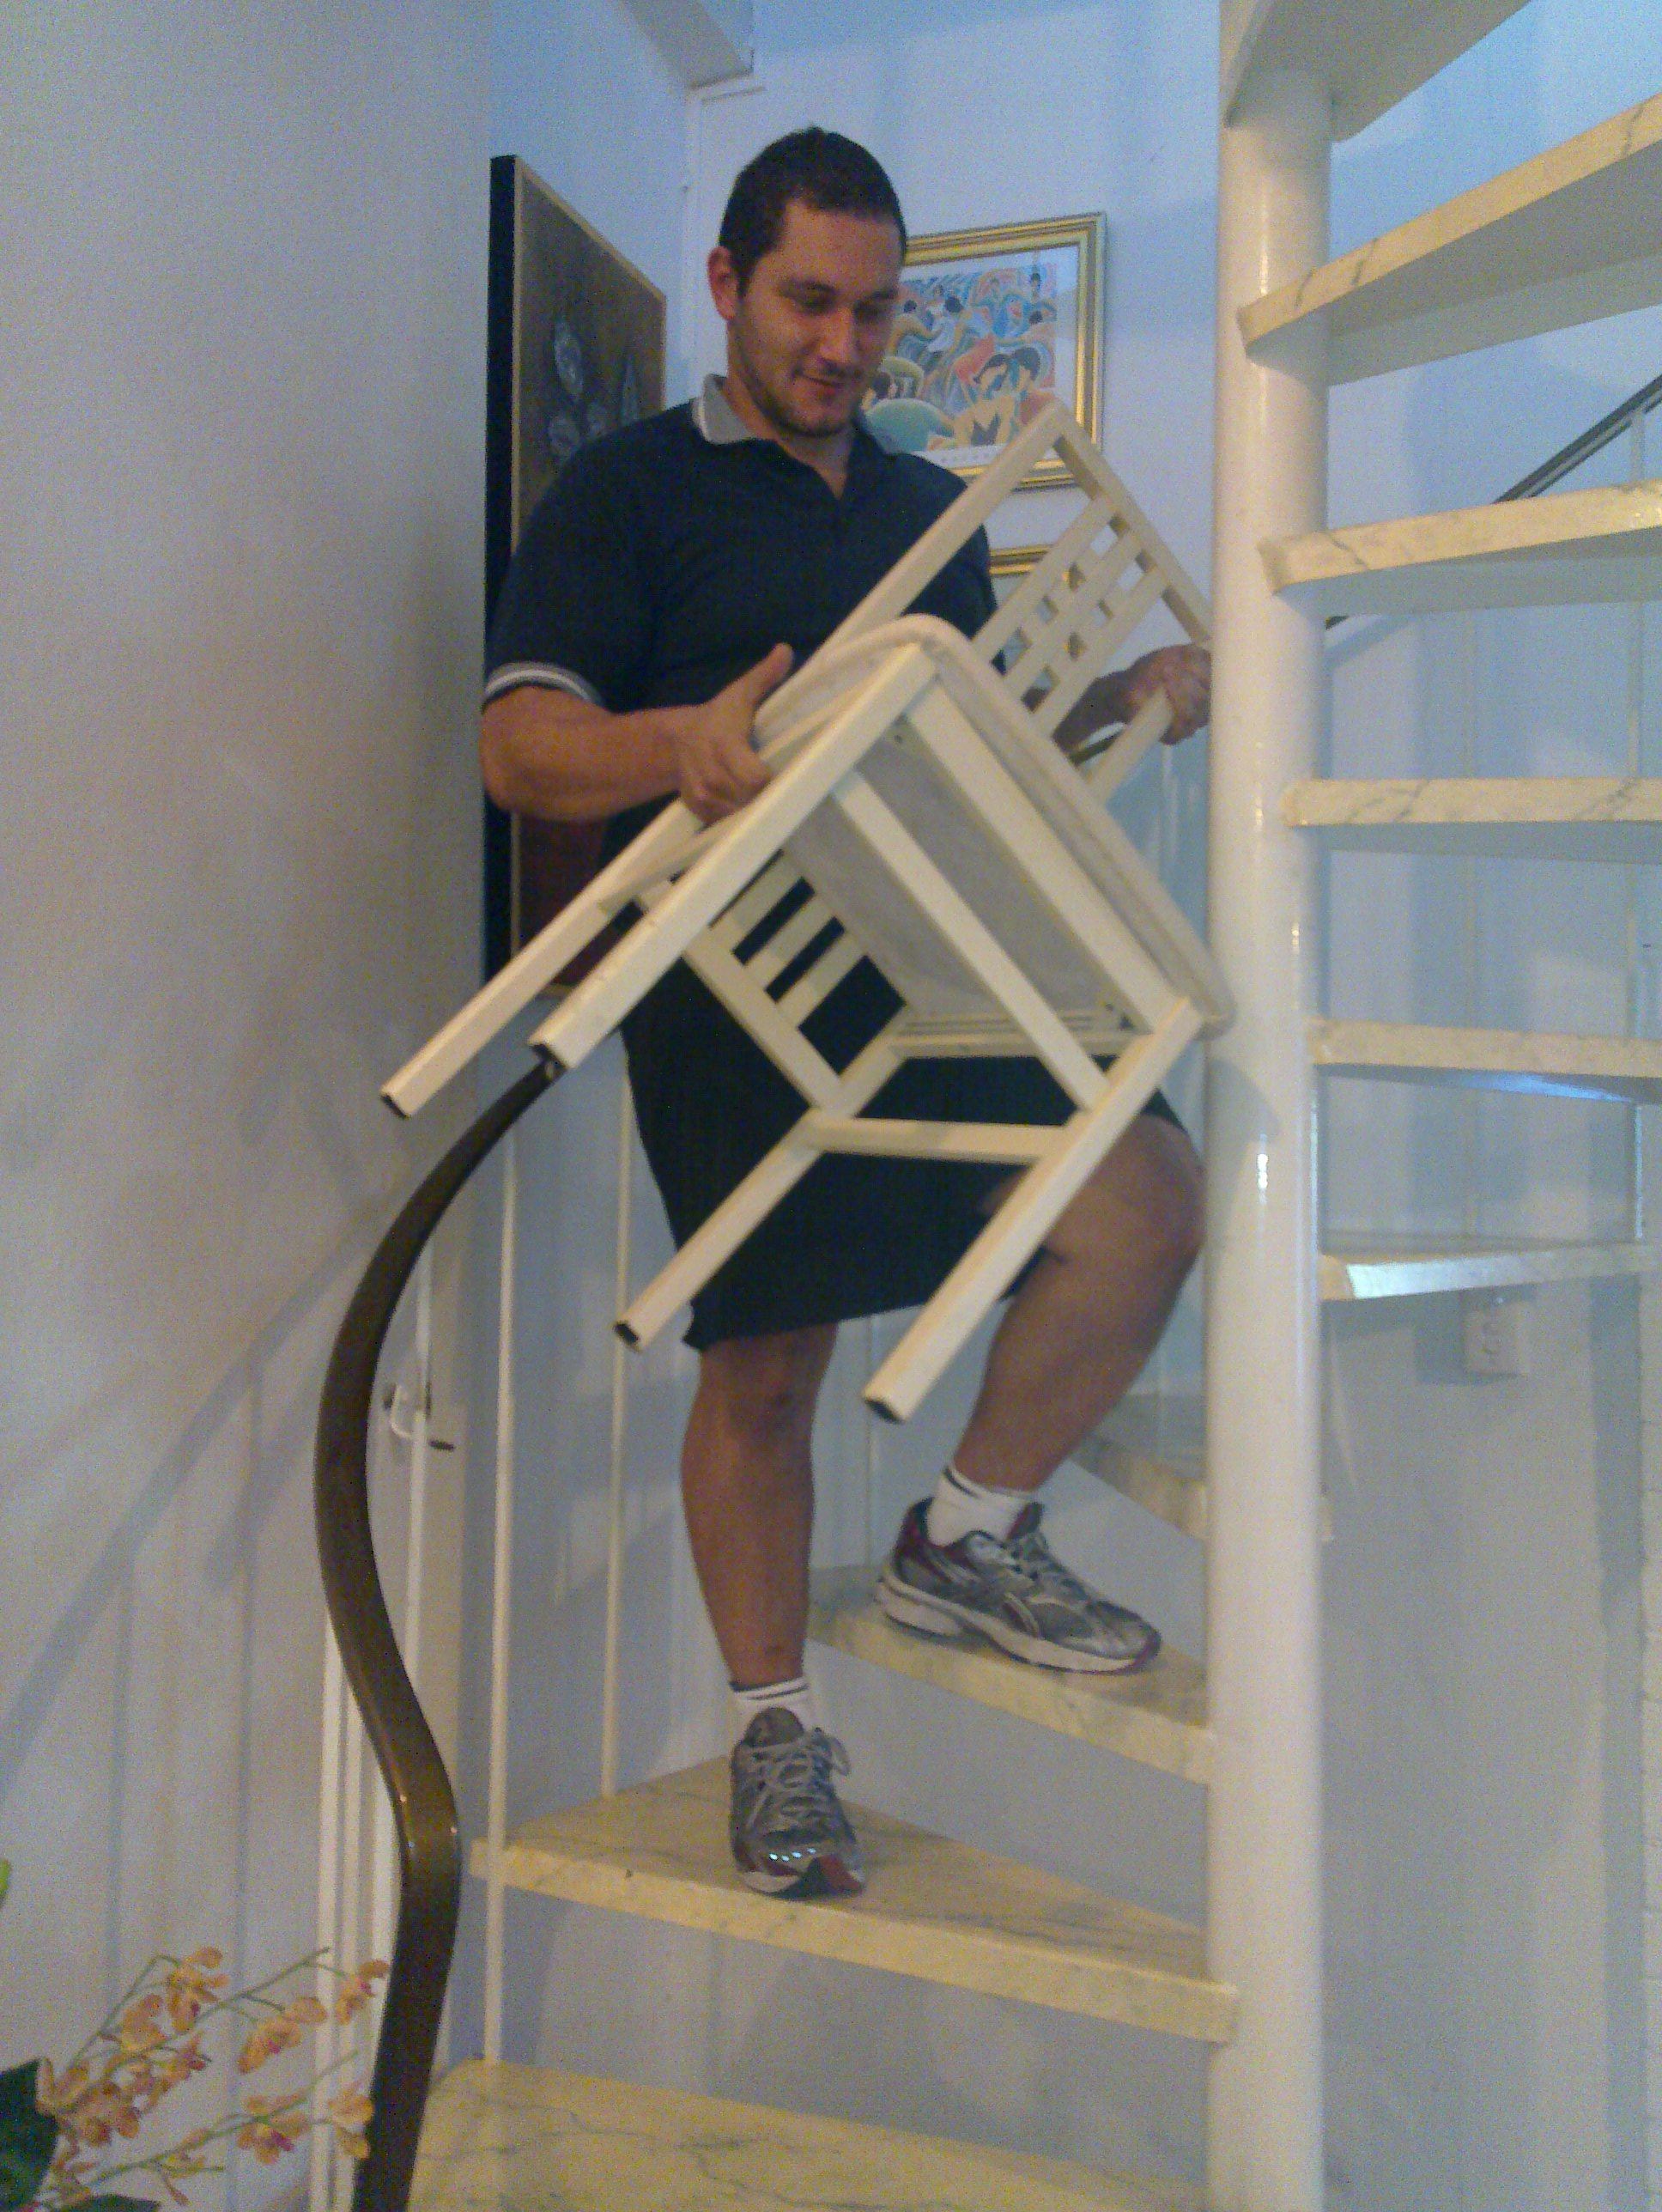 Narrow_stairs_tight_Staircase_furniture_removals